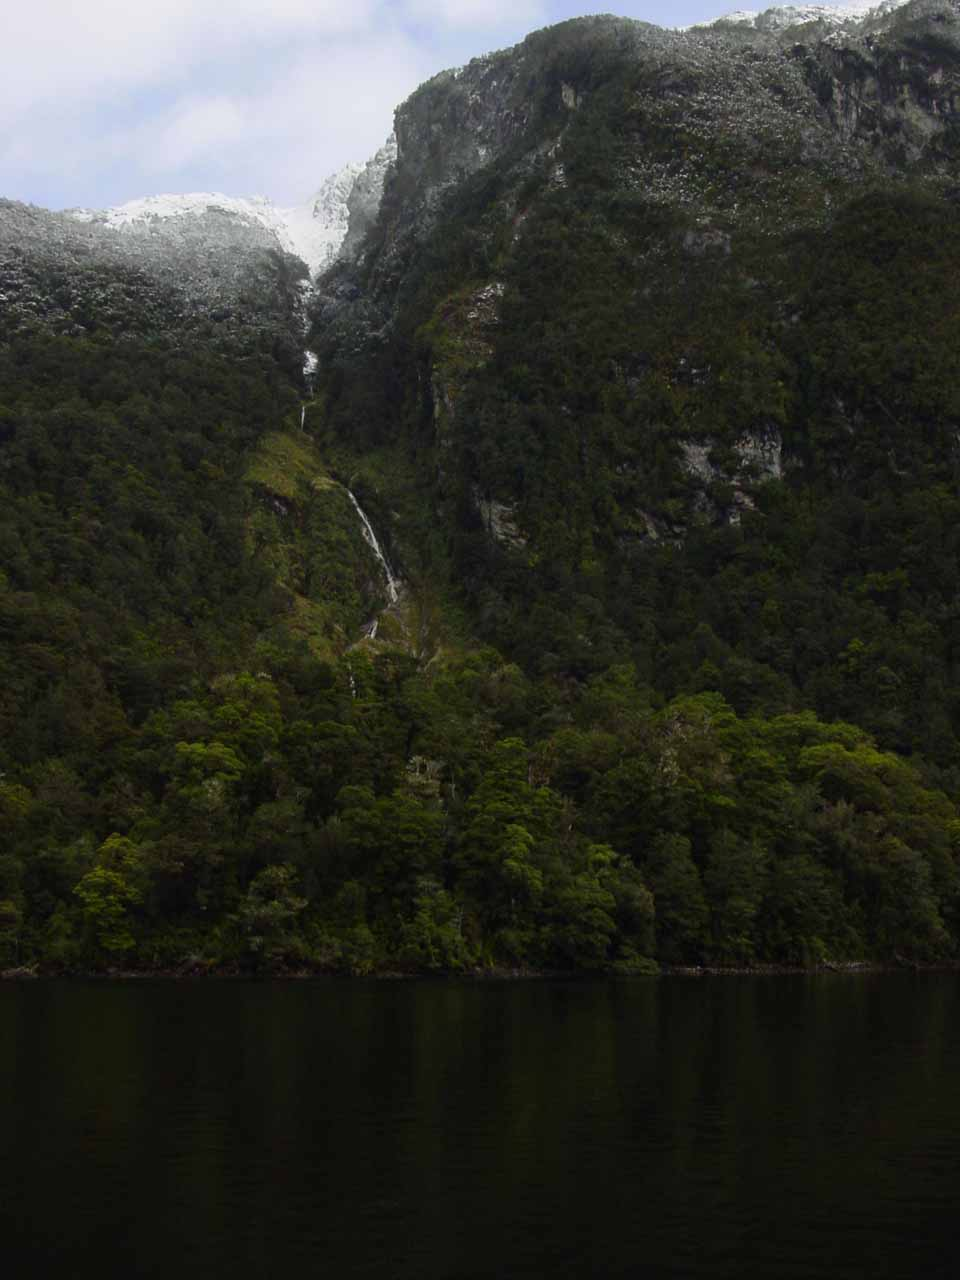 Looking towards some unnamed ephemeral waterfall spilling into Lake Manapouri